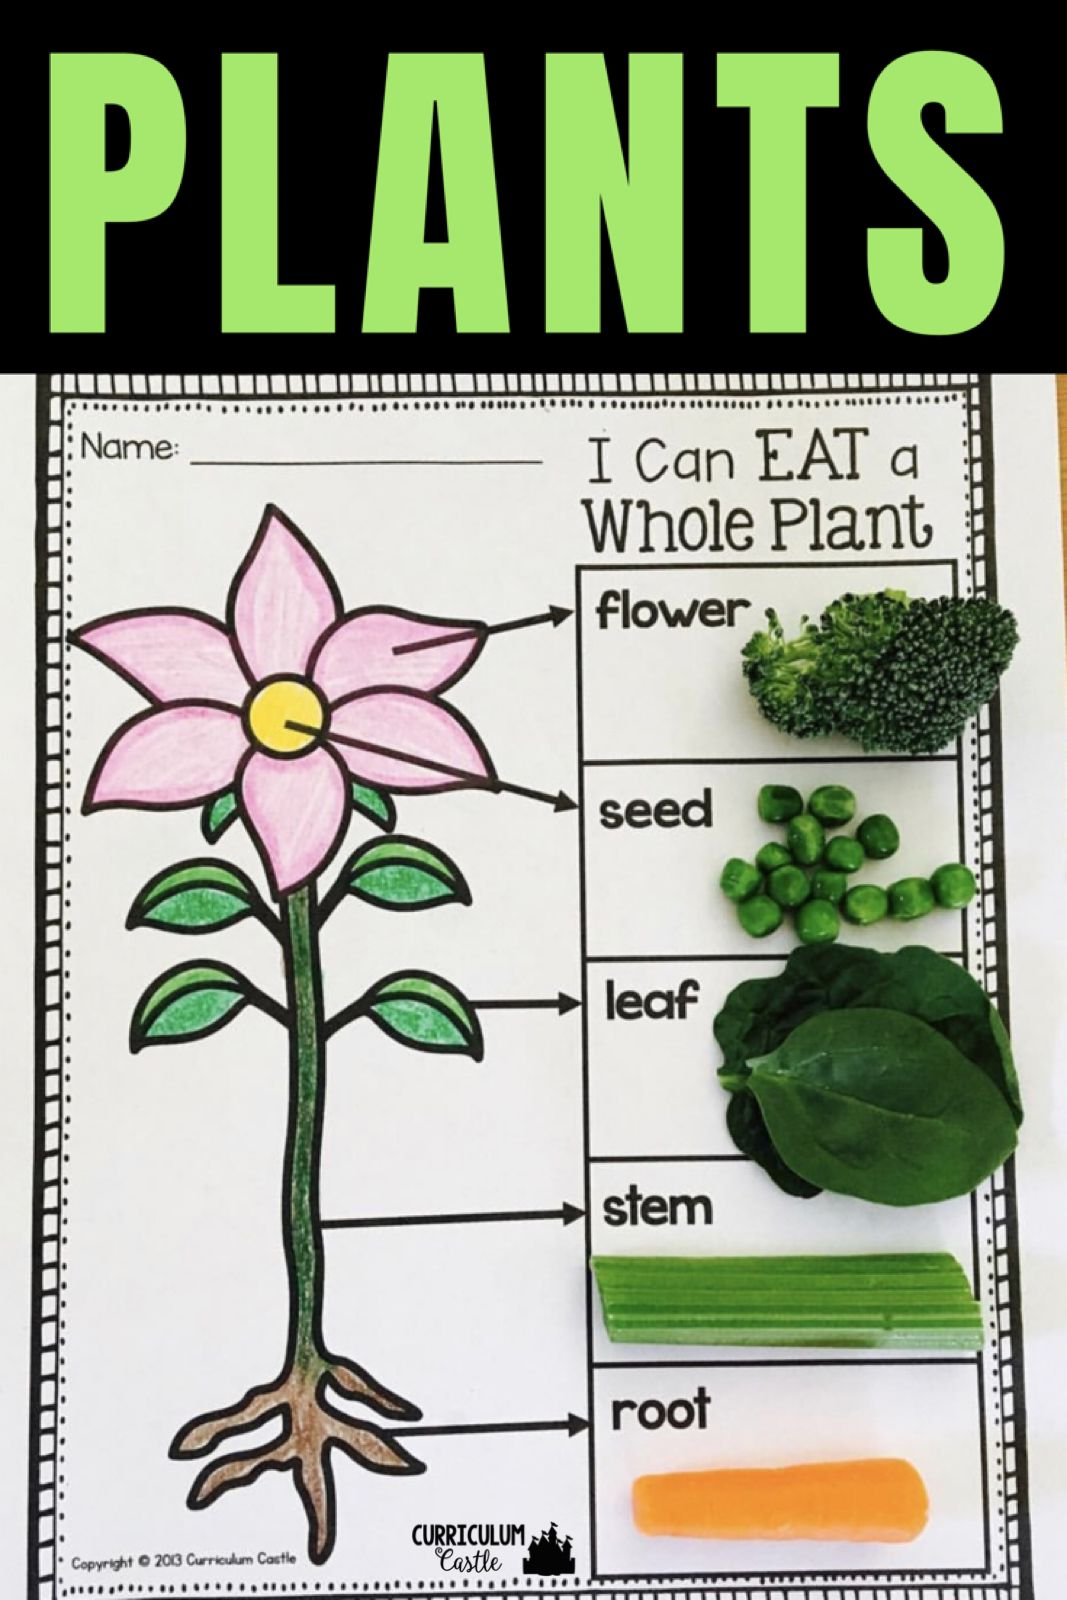 Parts of a Plant Activity: I can eat a whole plant!